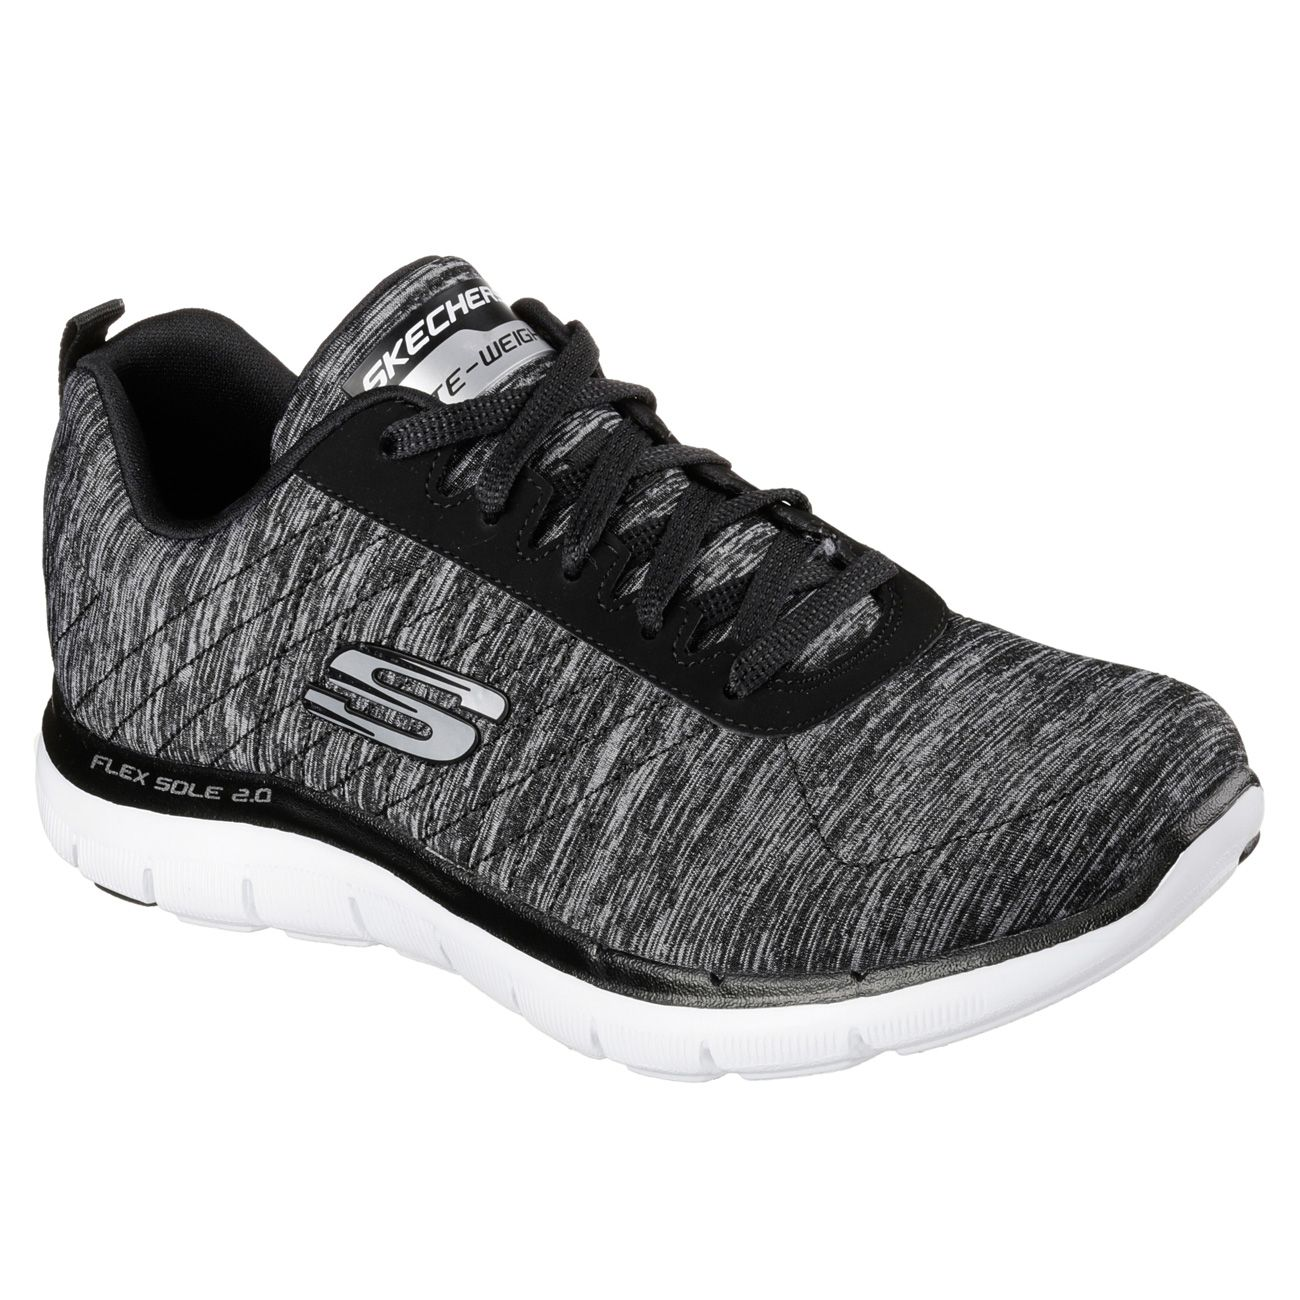 Air Sole Walking Shoes